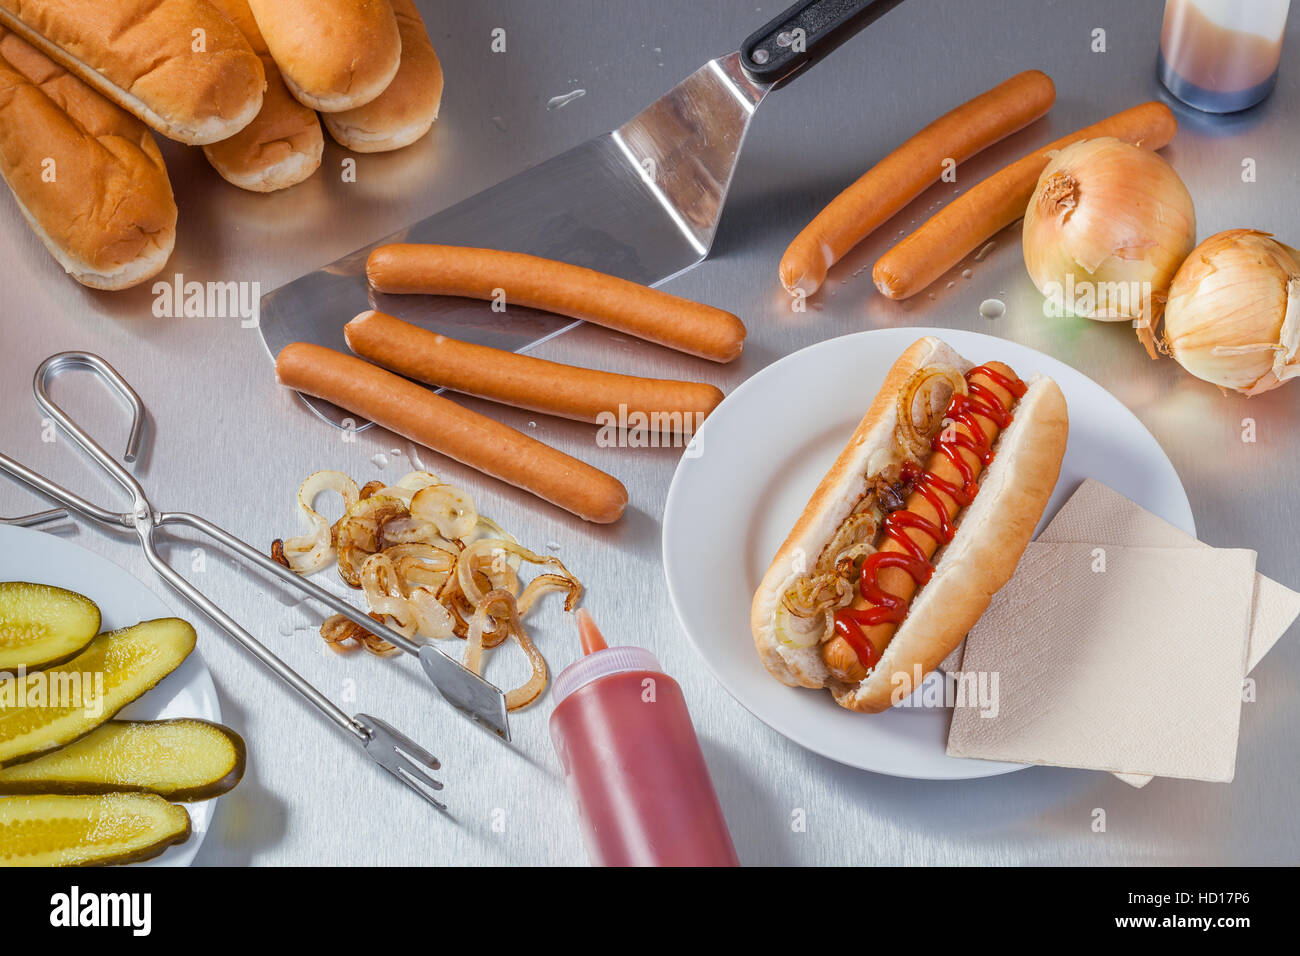 Preparing hot dogs in the stainless steel kitchen of a food truck or hot dog stand. - Stock Image